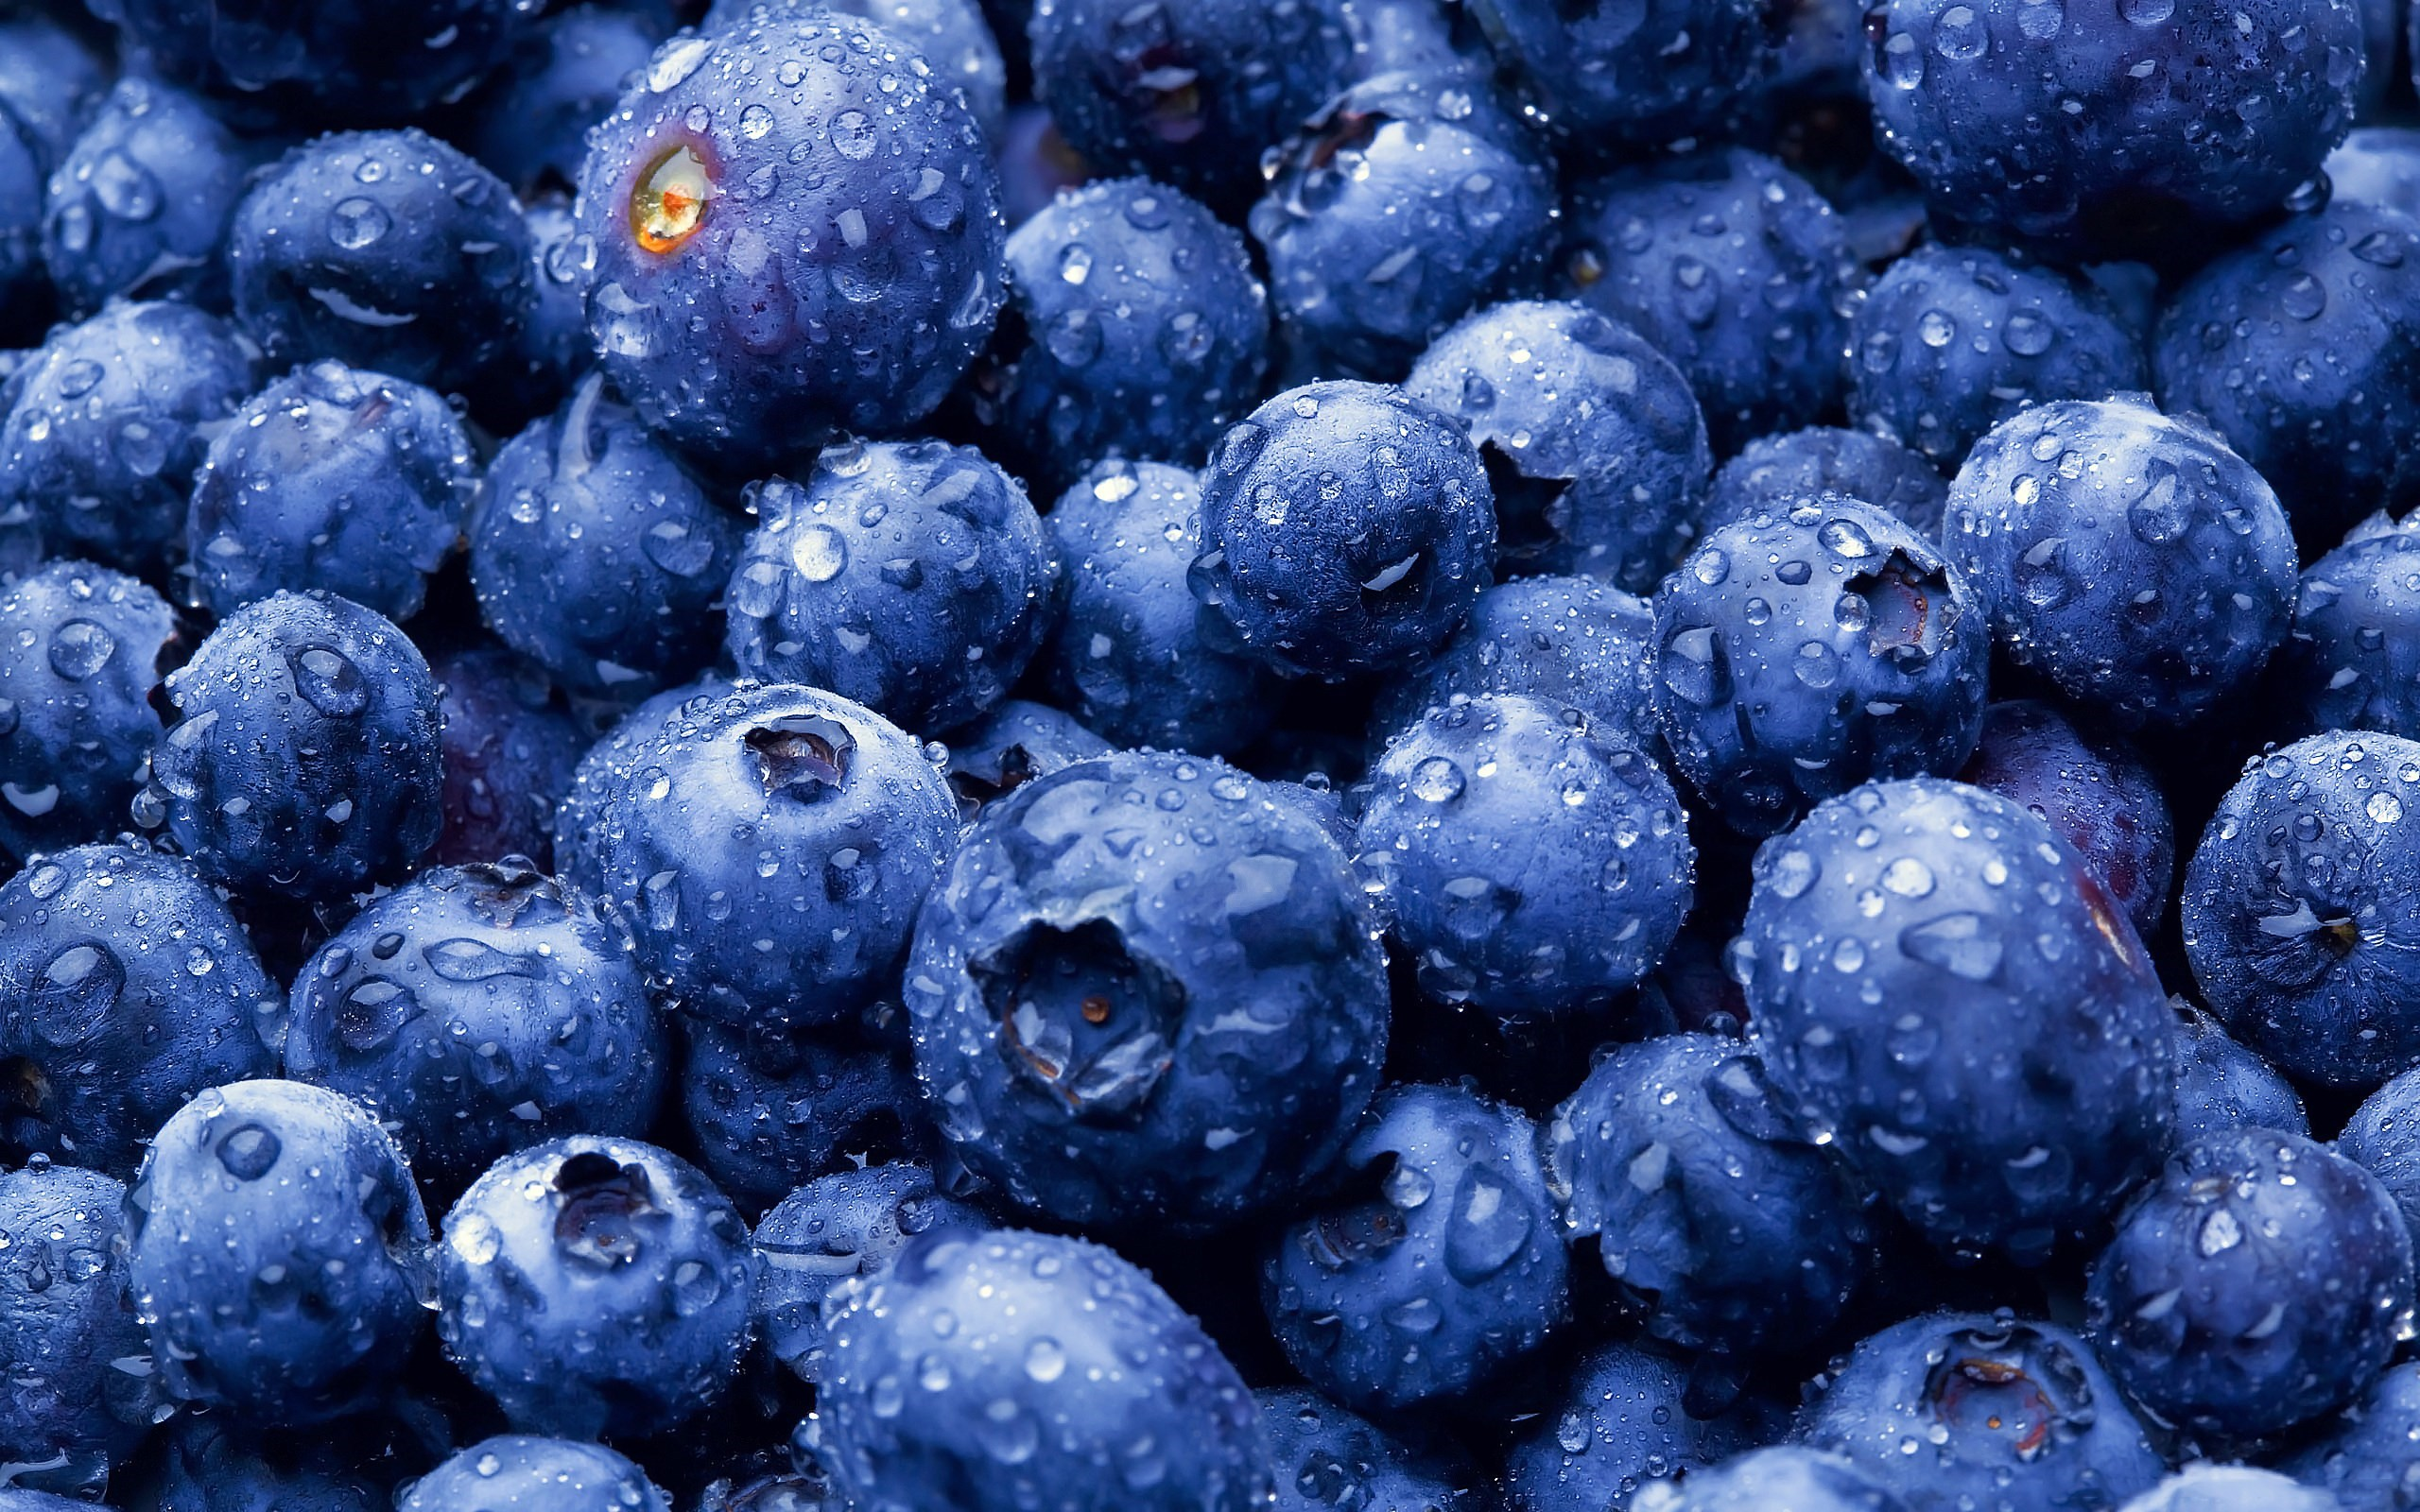 Blueberries Berries Close-Up HD Wallpaper